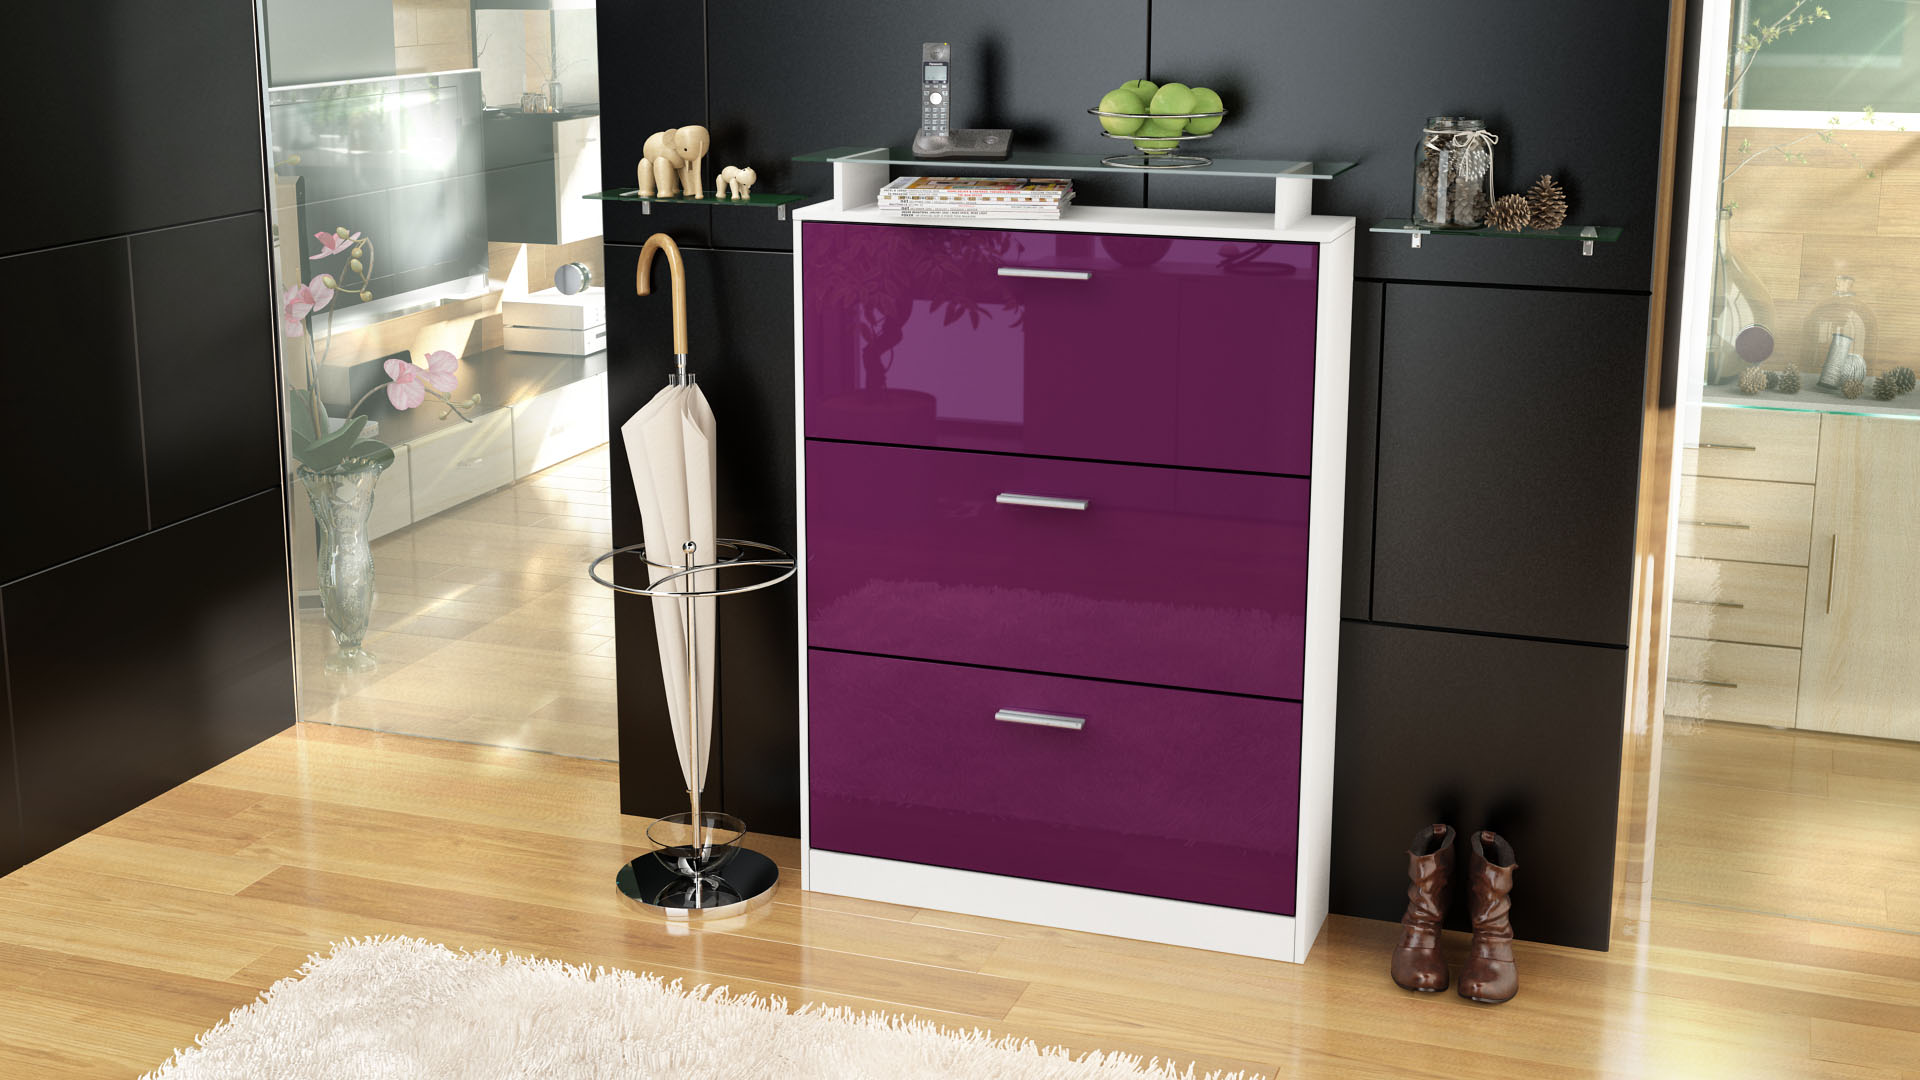 schuhschrank schuhkipper diele flur schrank lavia wei. Black Bedroom Furniture Sets. Home Design Ideas